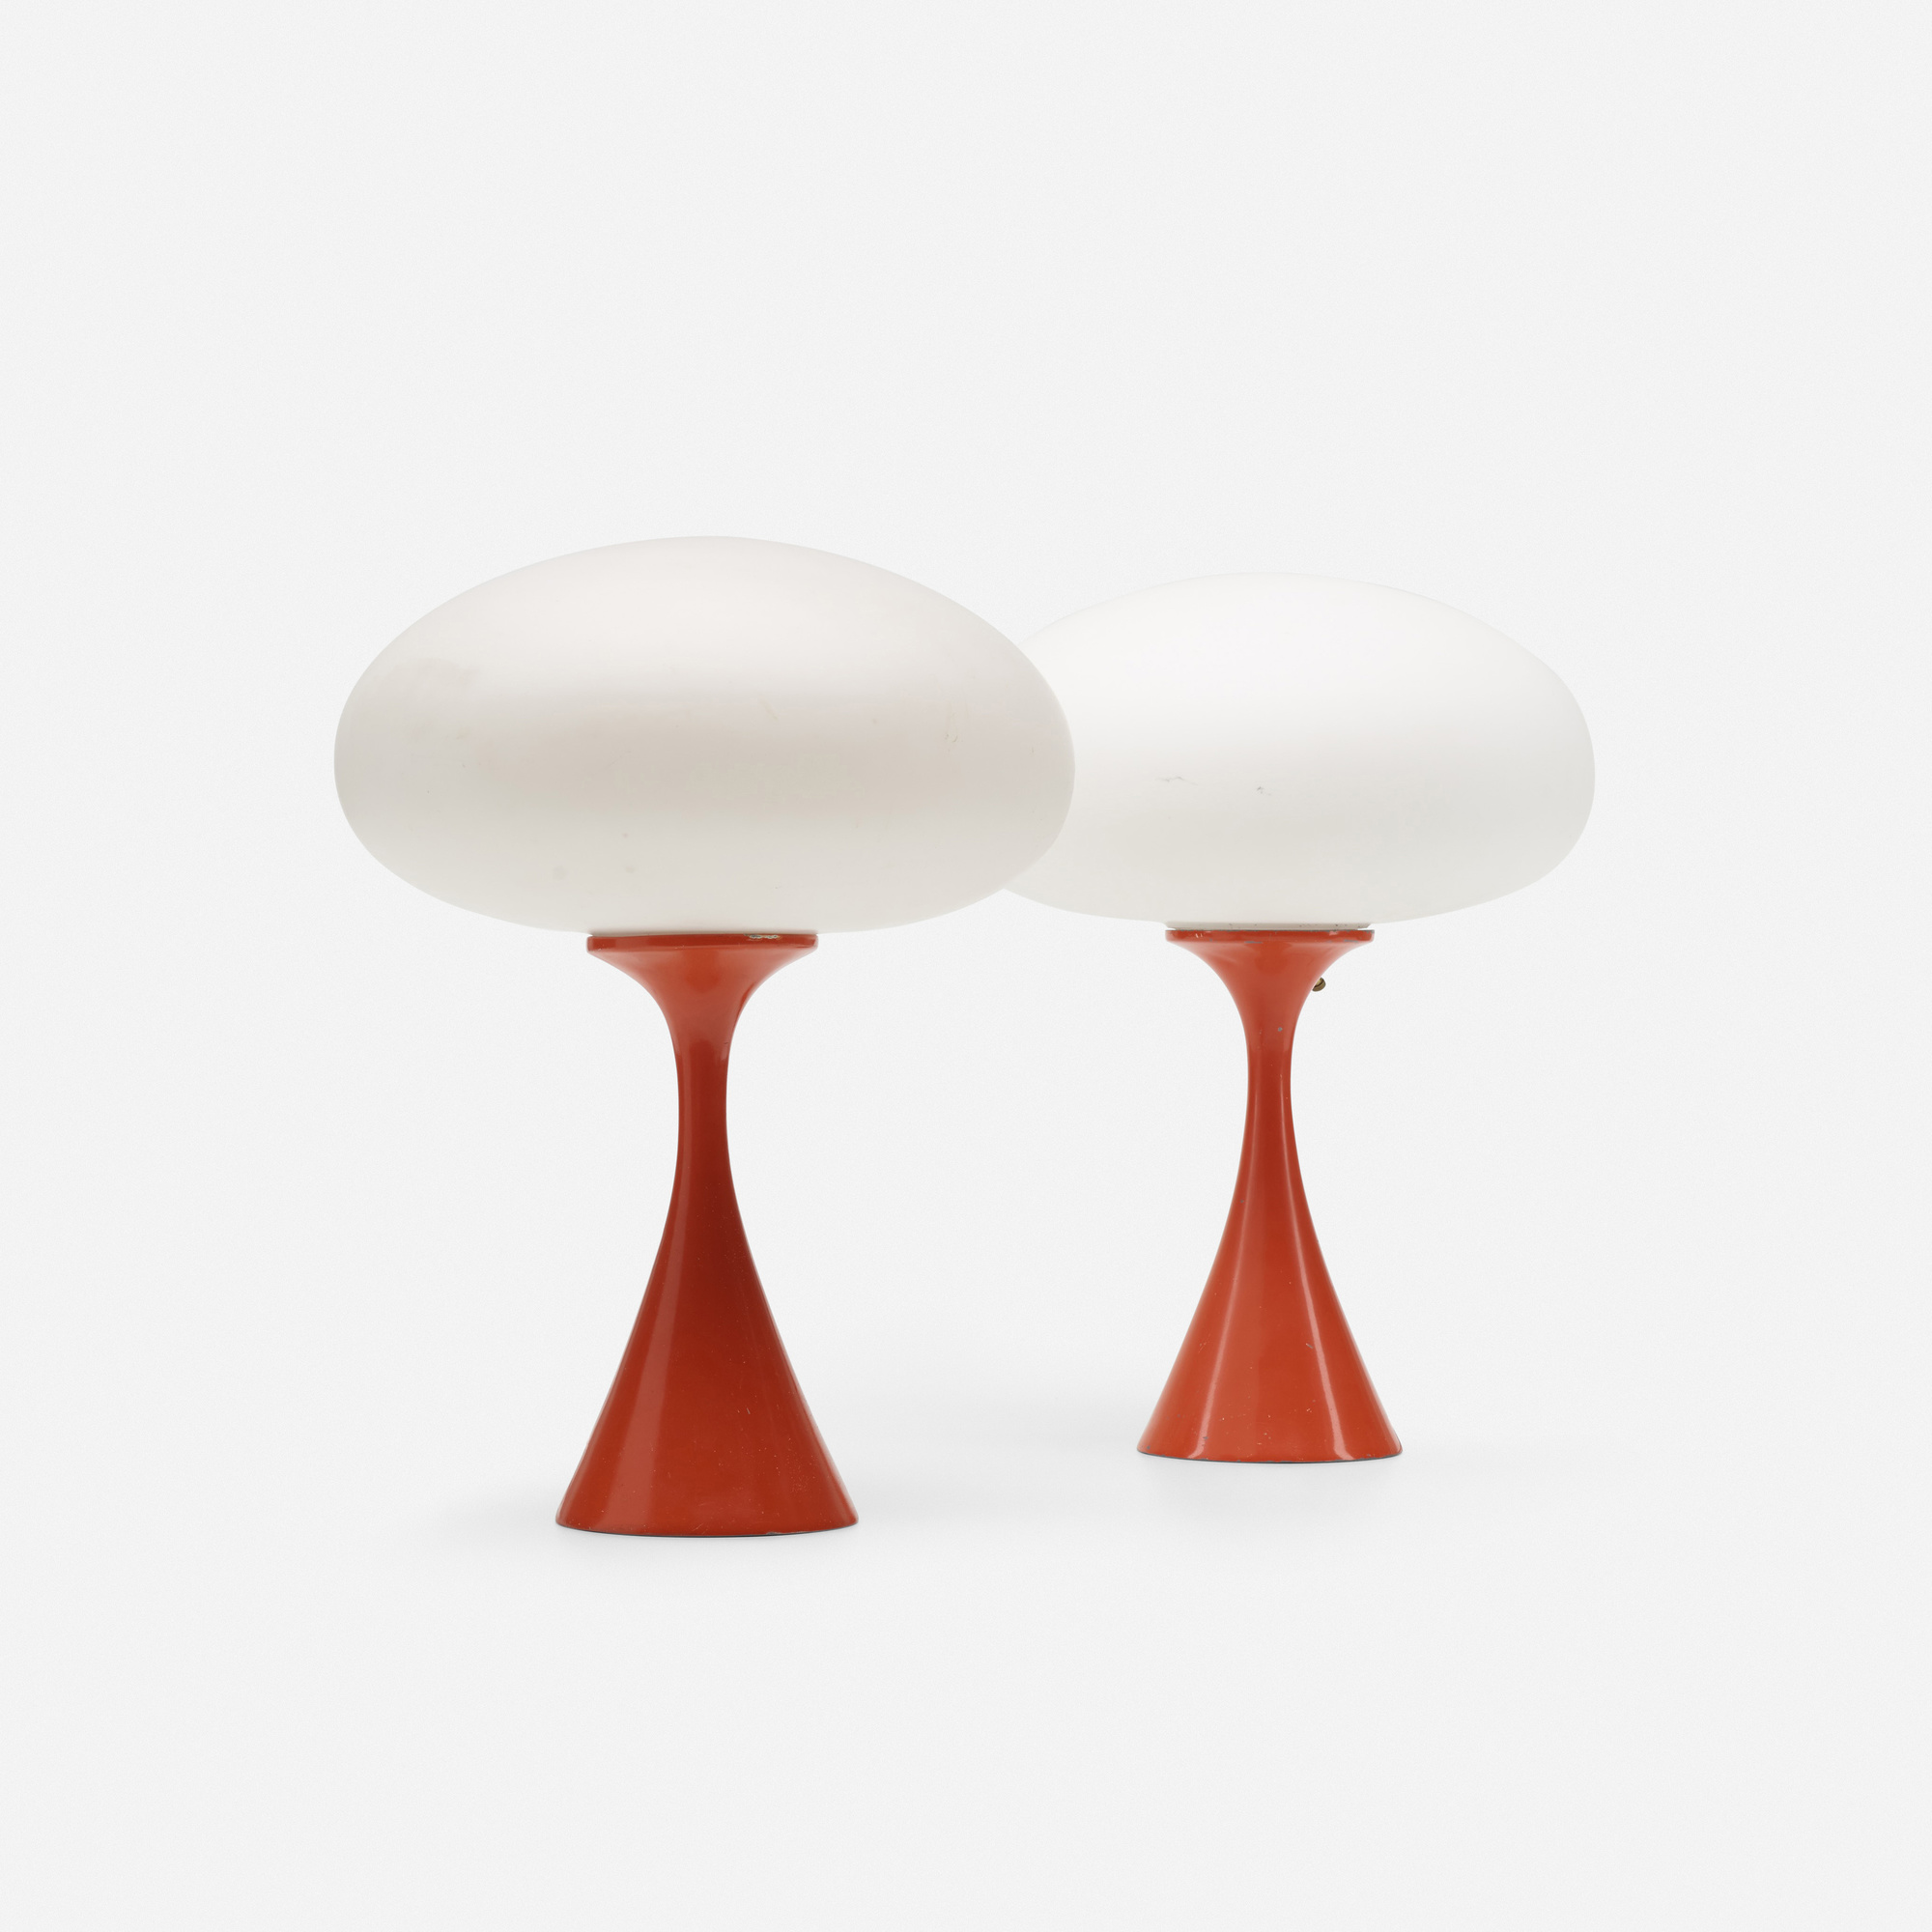 297: Laurel Lamp Co. / Mushroom table lamps, pair (2 of 2)